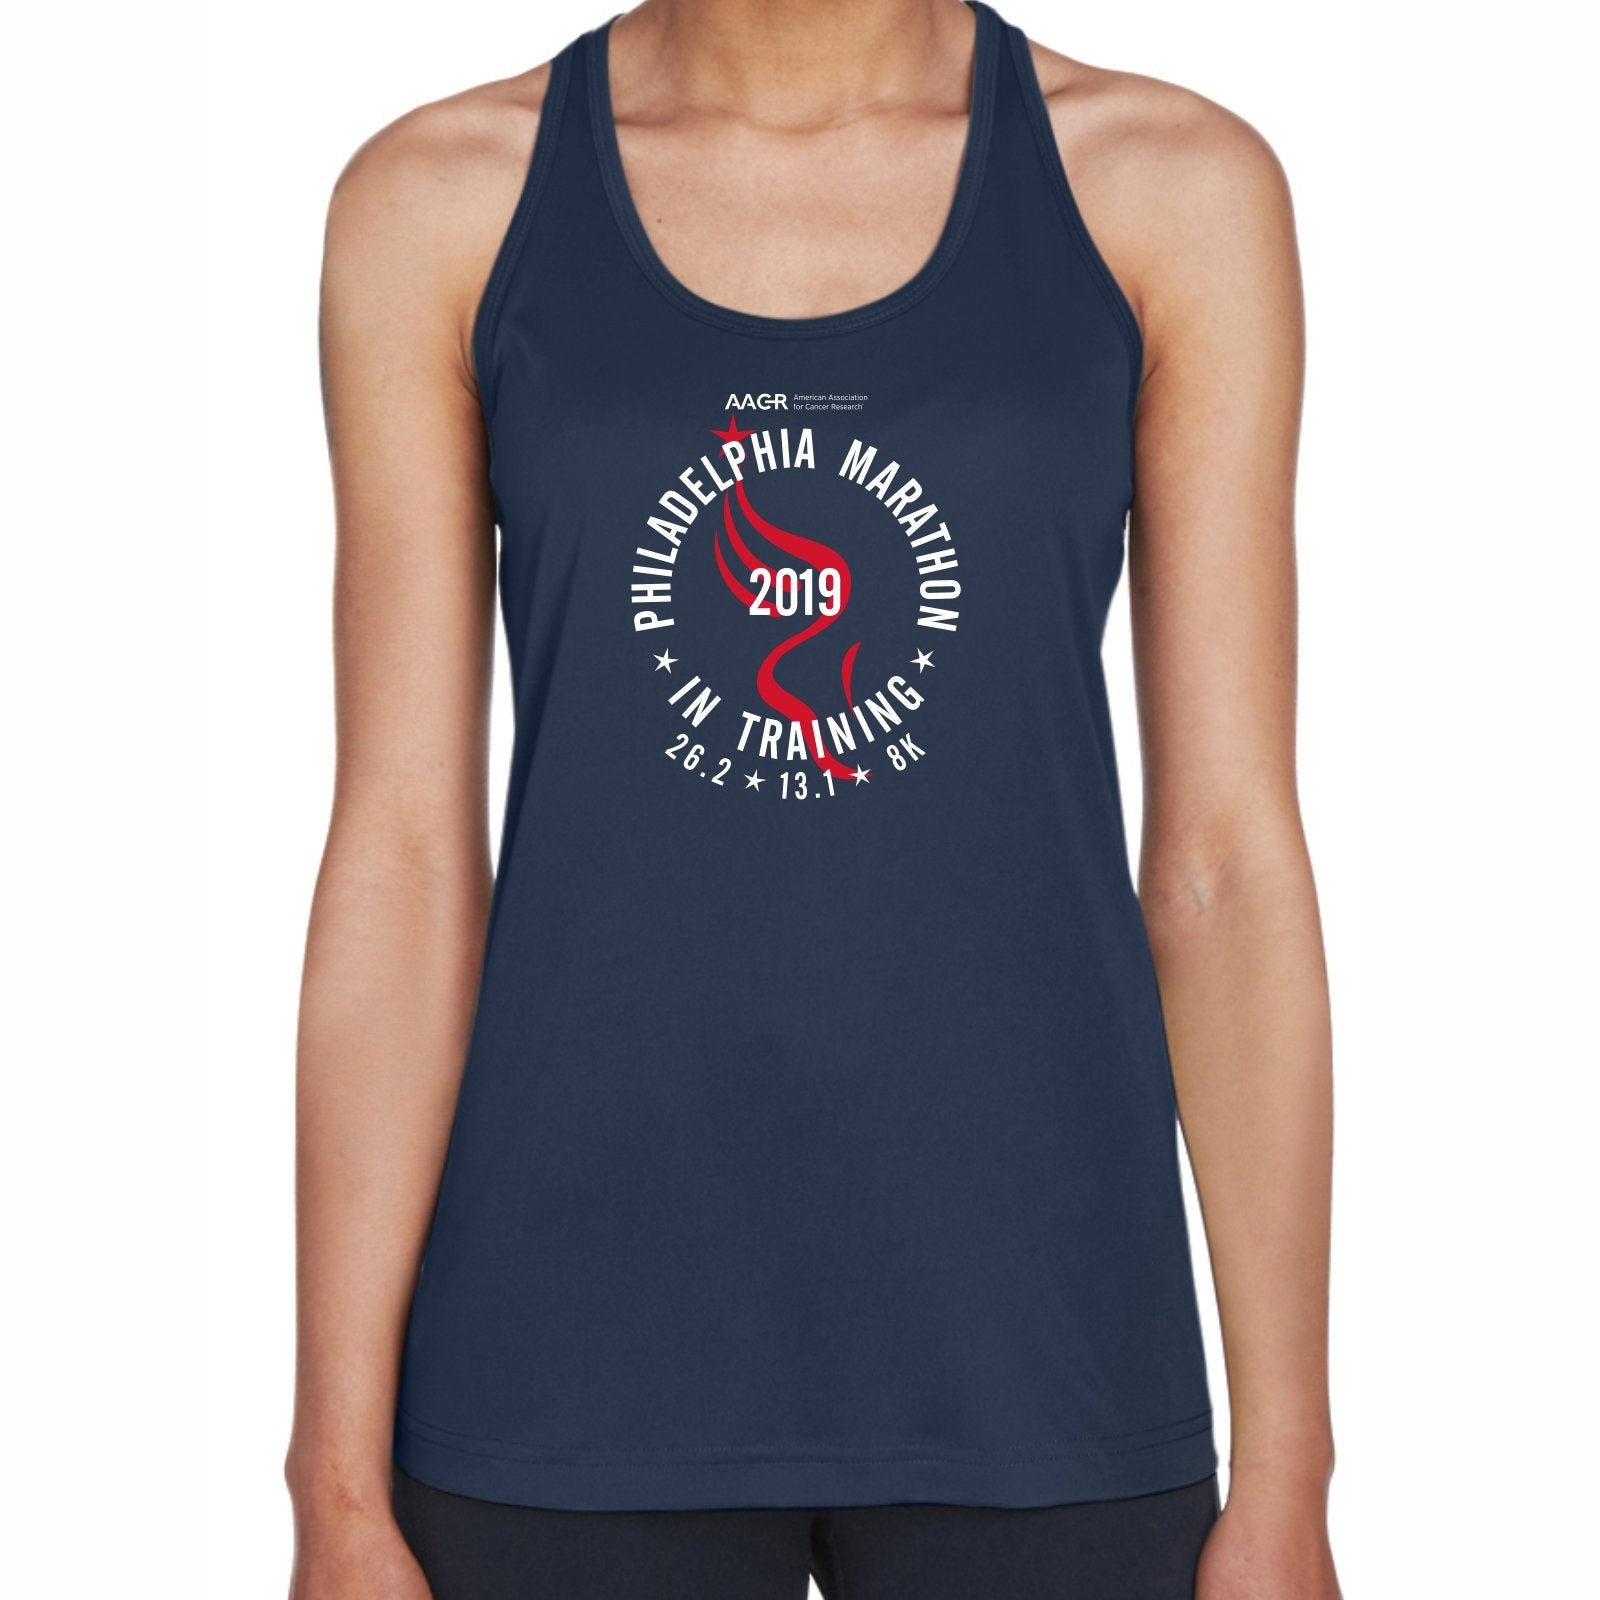 2019 AACR Philadelphia Marathon Women's In-Training Sports Tank - Navy